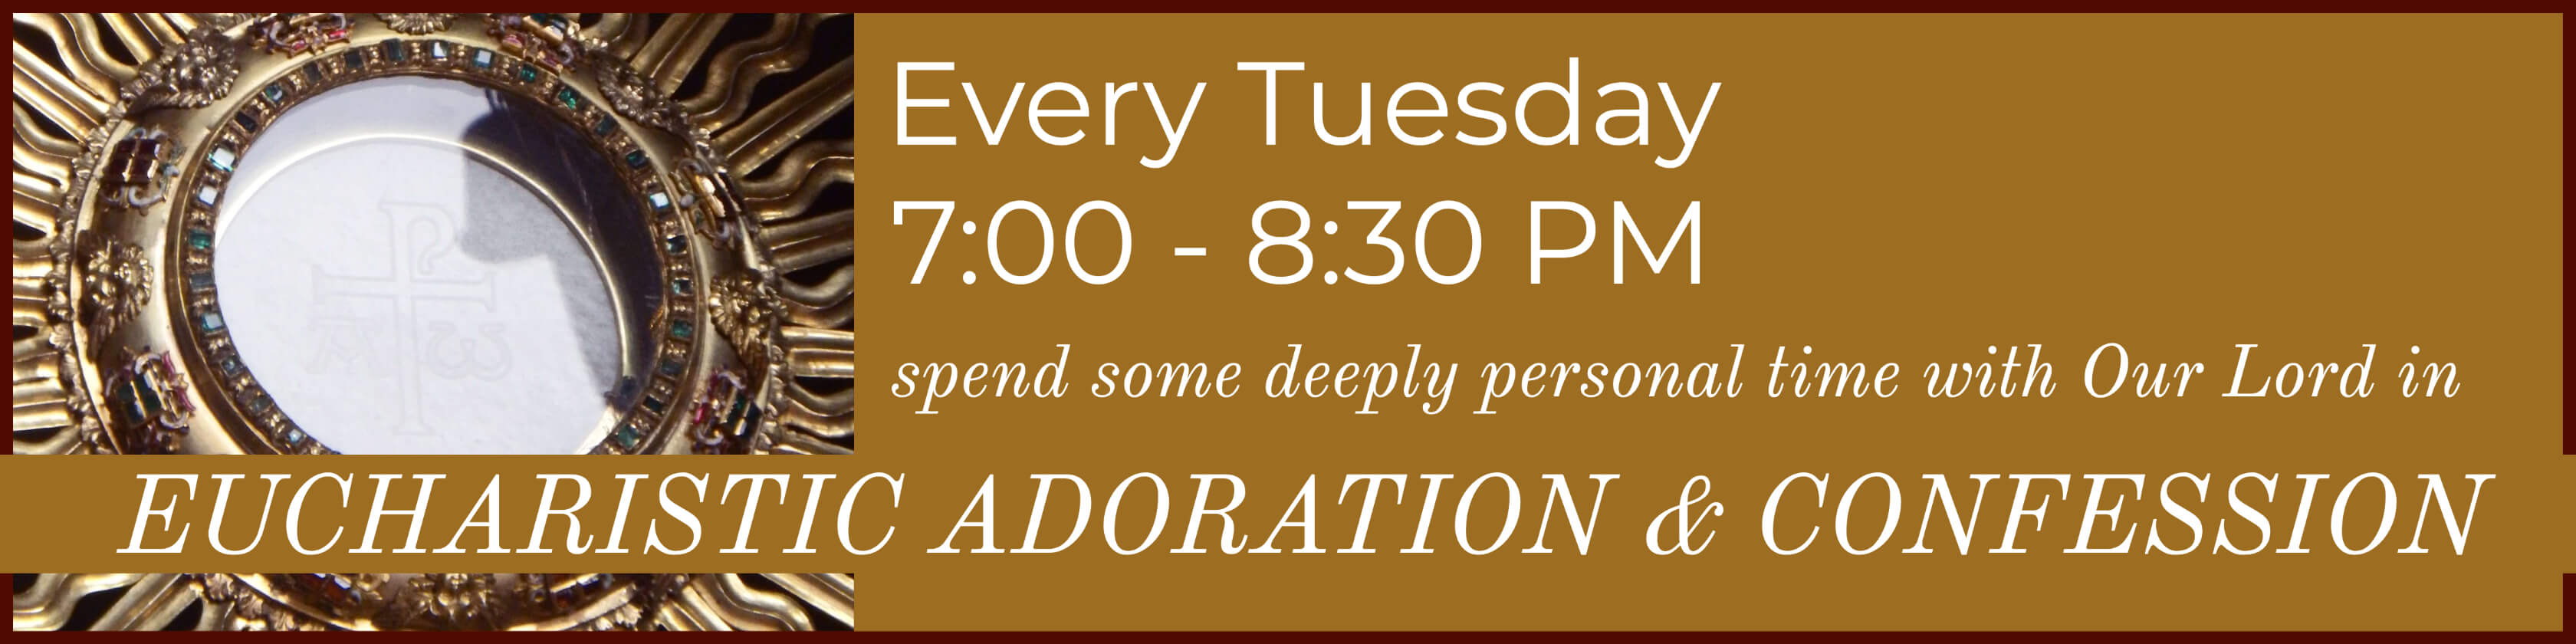 Tuesday Adoration & Confession